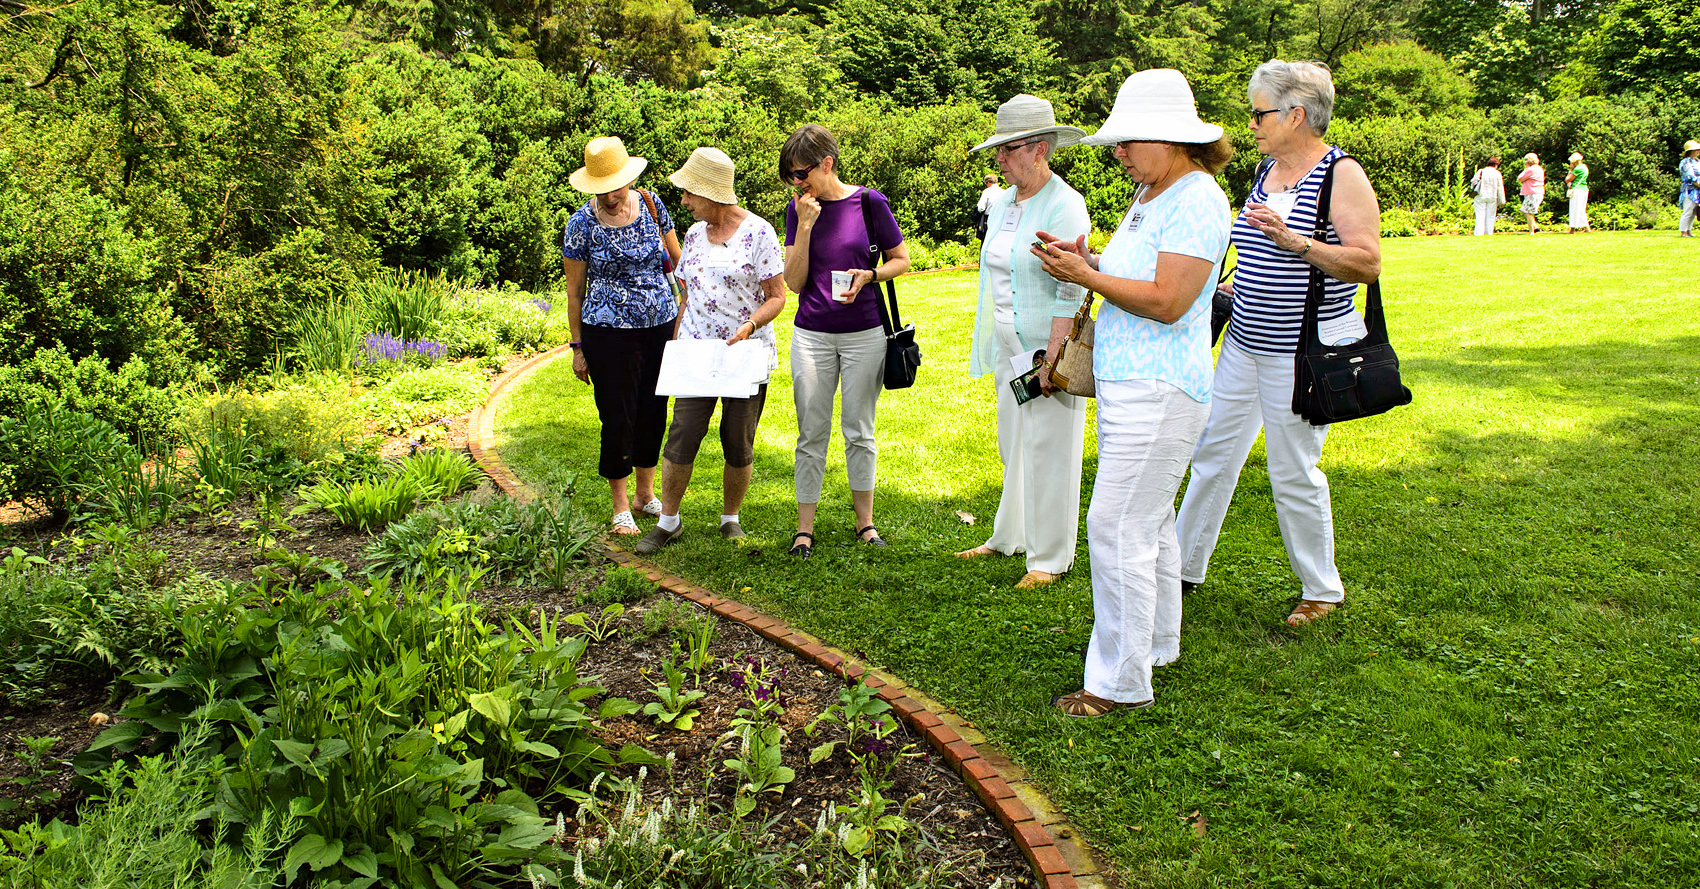 A tour group admires plants in the Farrand landscape